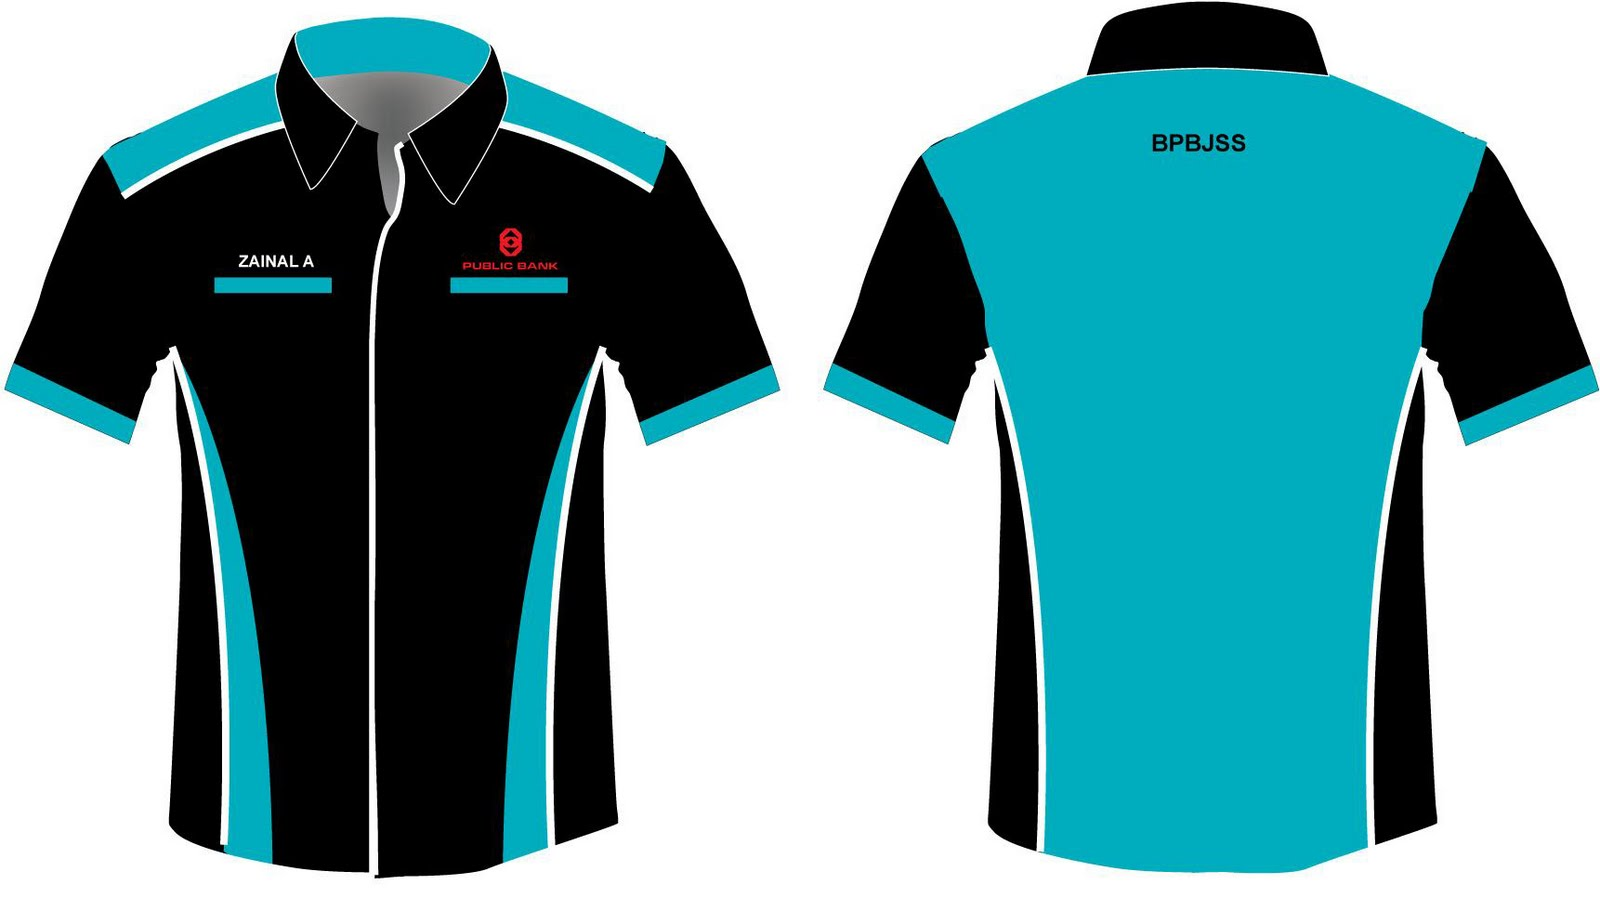 Corporat Uniform Public Bank Corporate Shirts